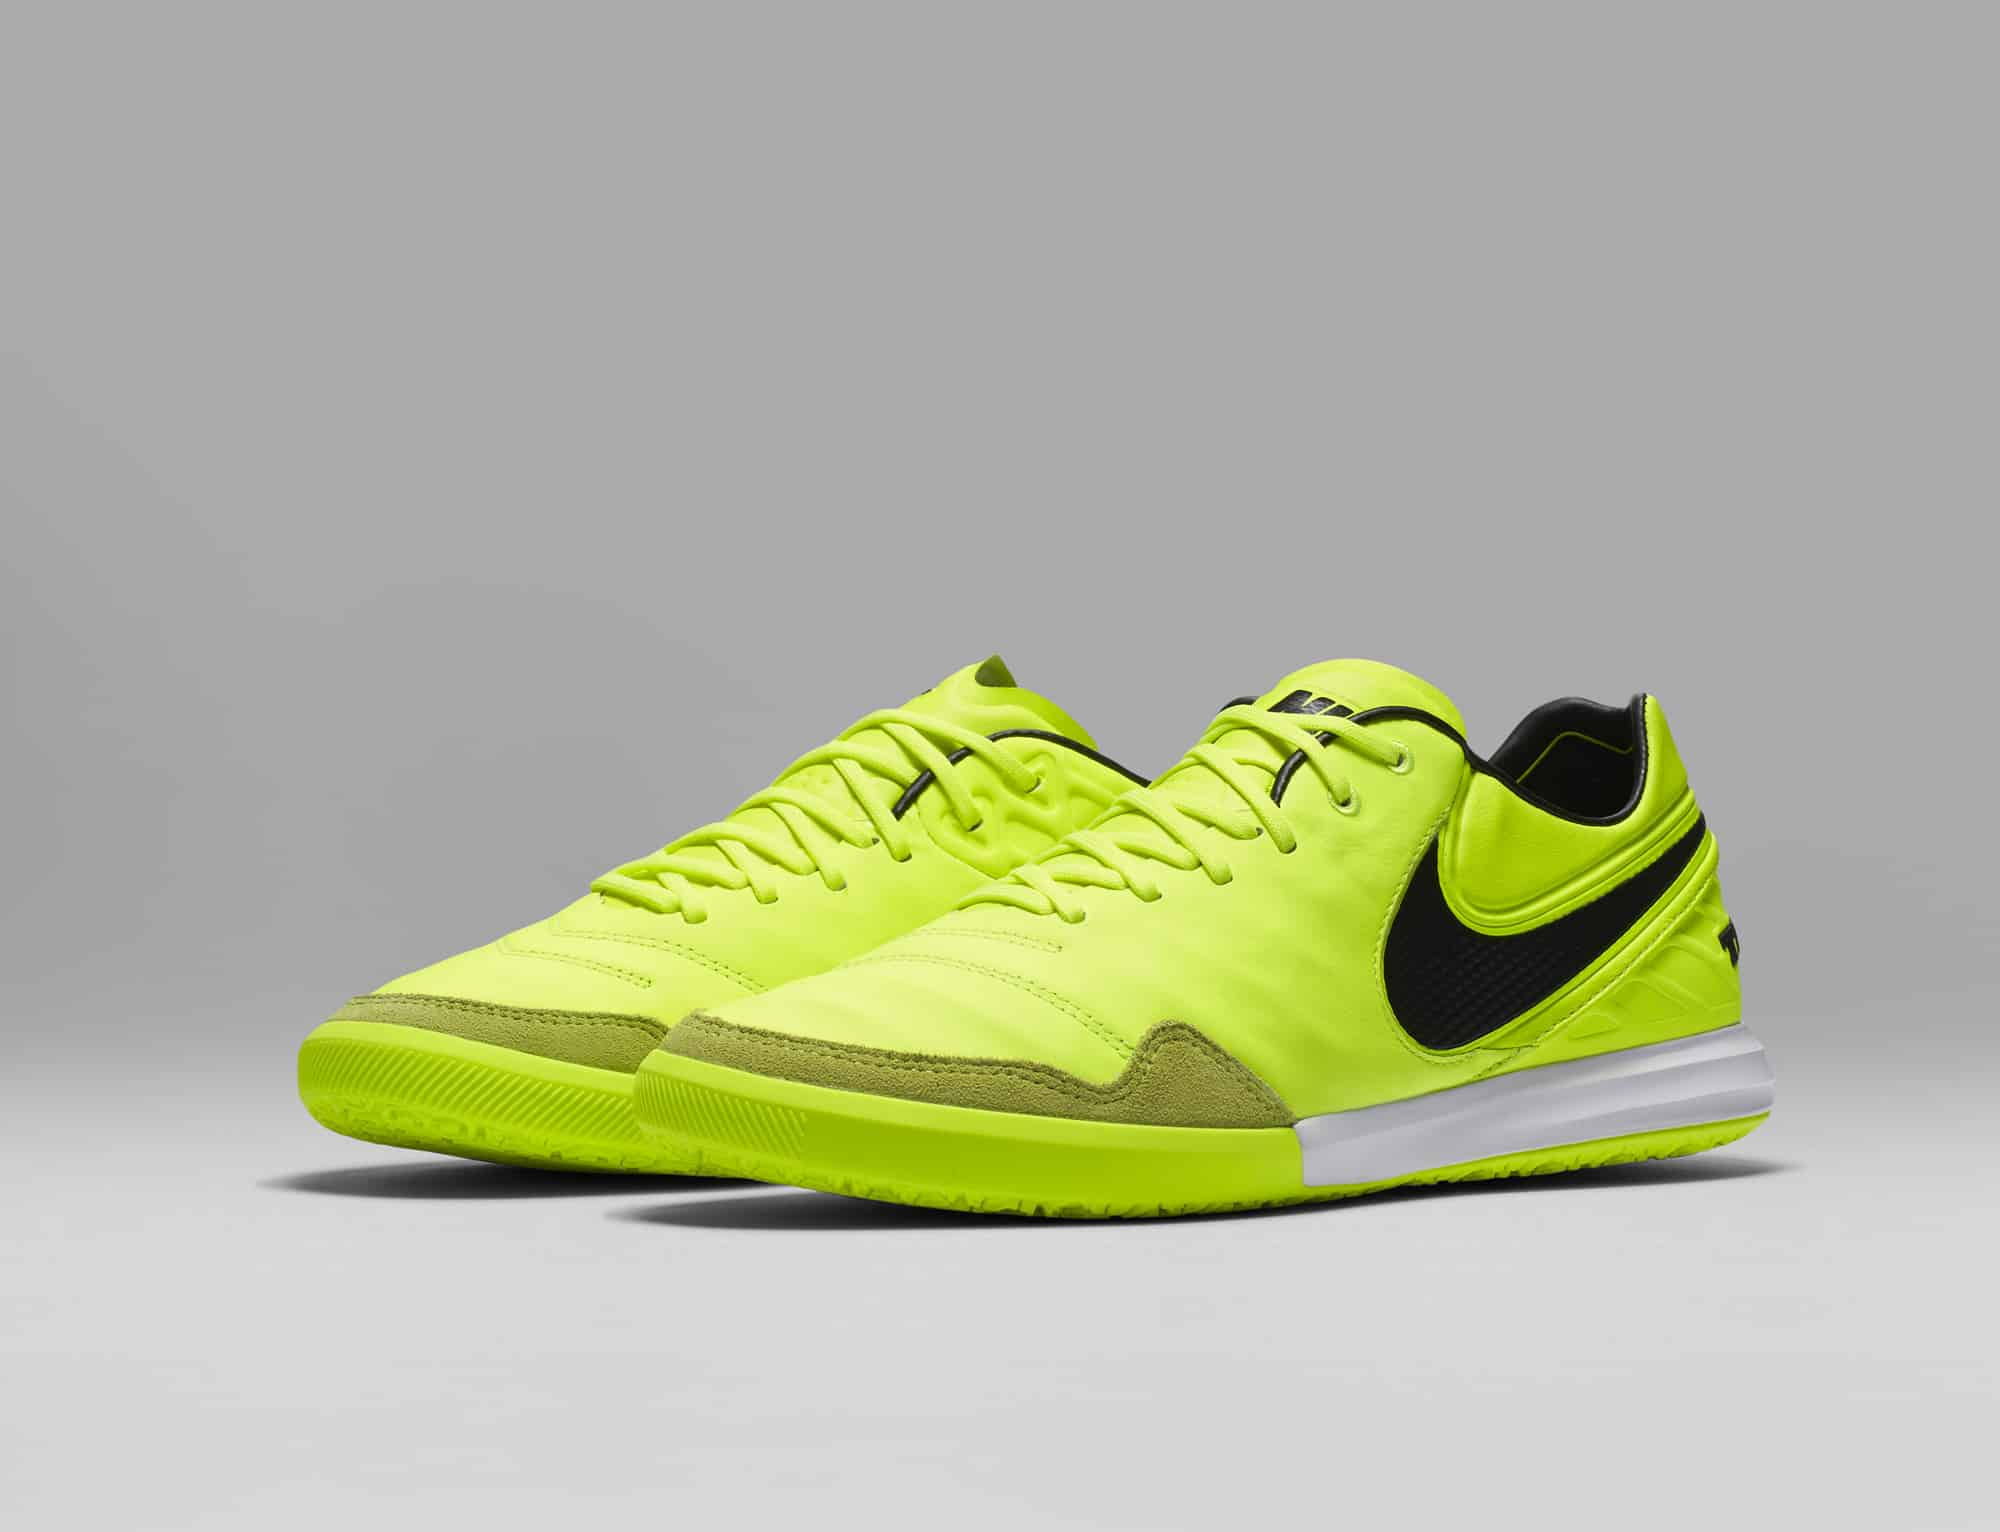 chaussures-football-Nike-TiempoX-Men-Radiation-Flare-img1